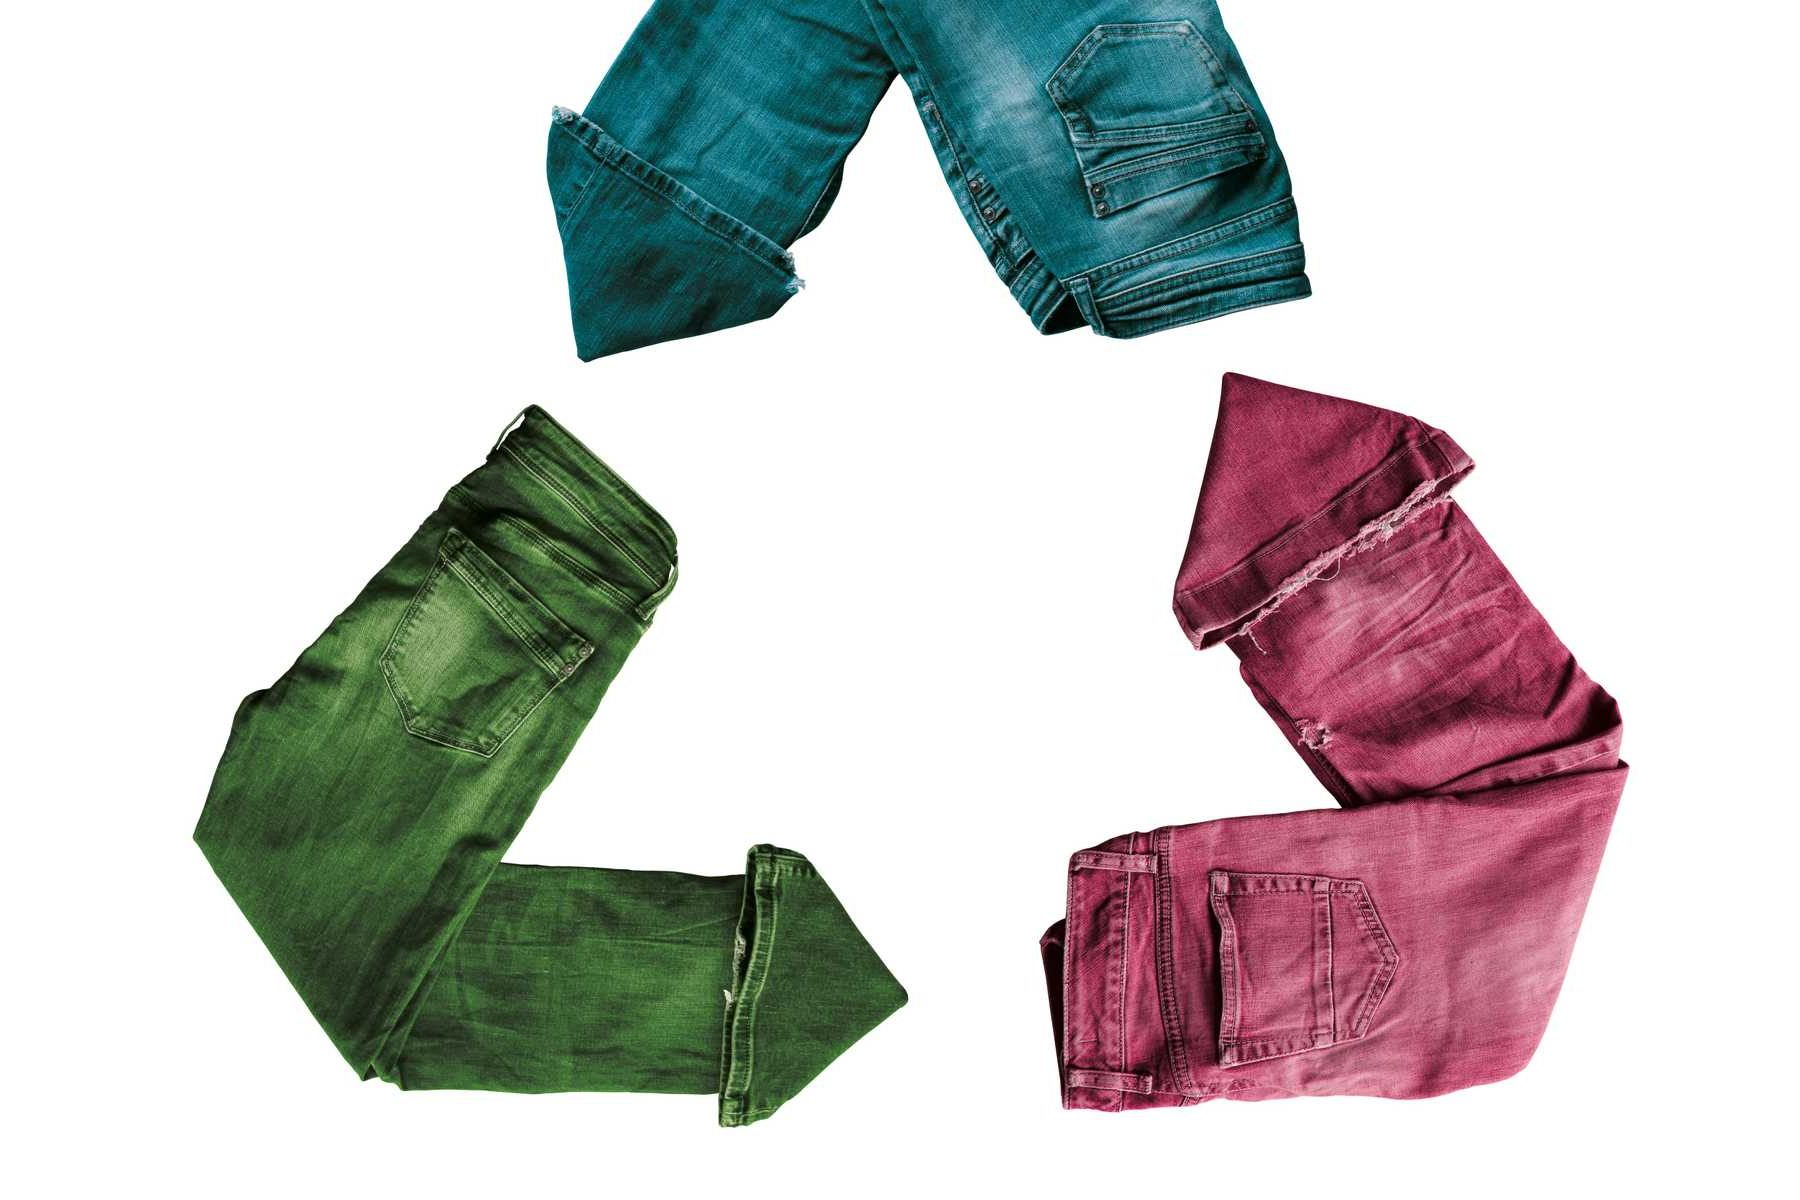 Your unused clothing will be recycled. Pants with different colors arranged in the recycle symbol.